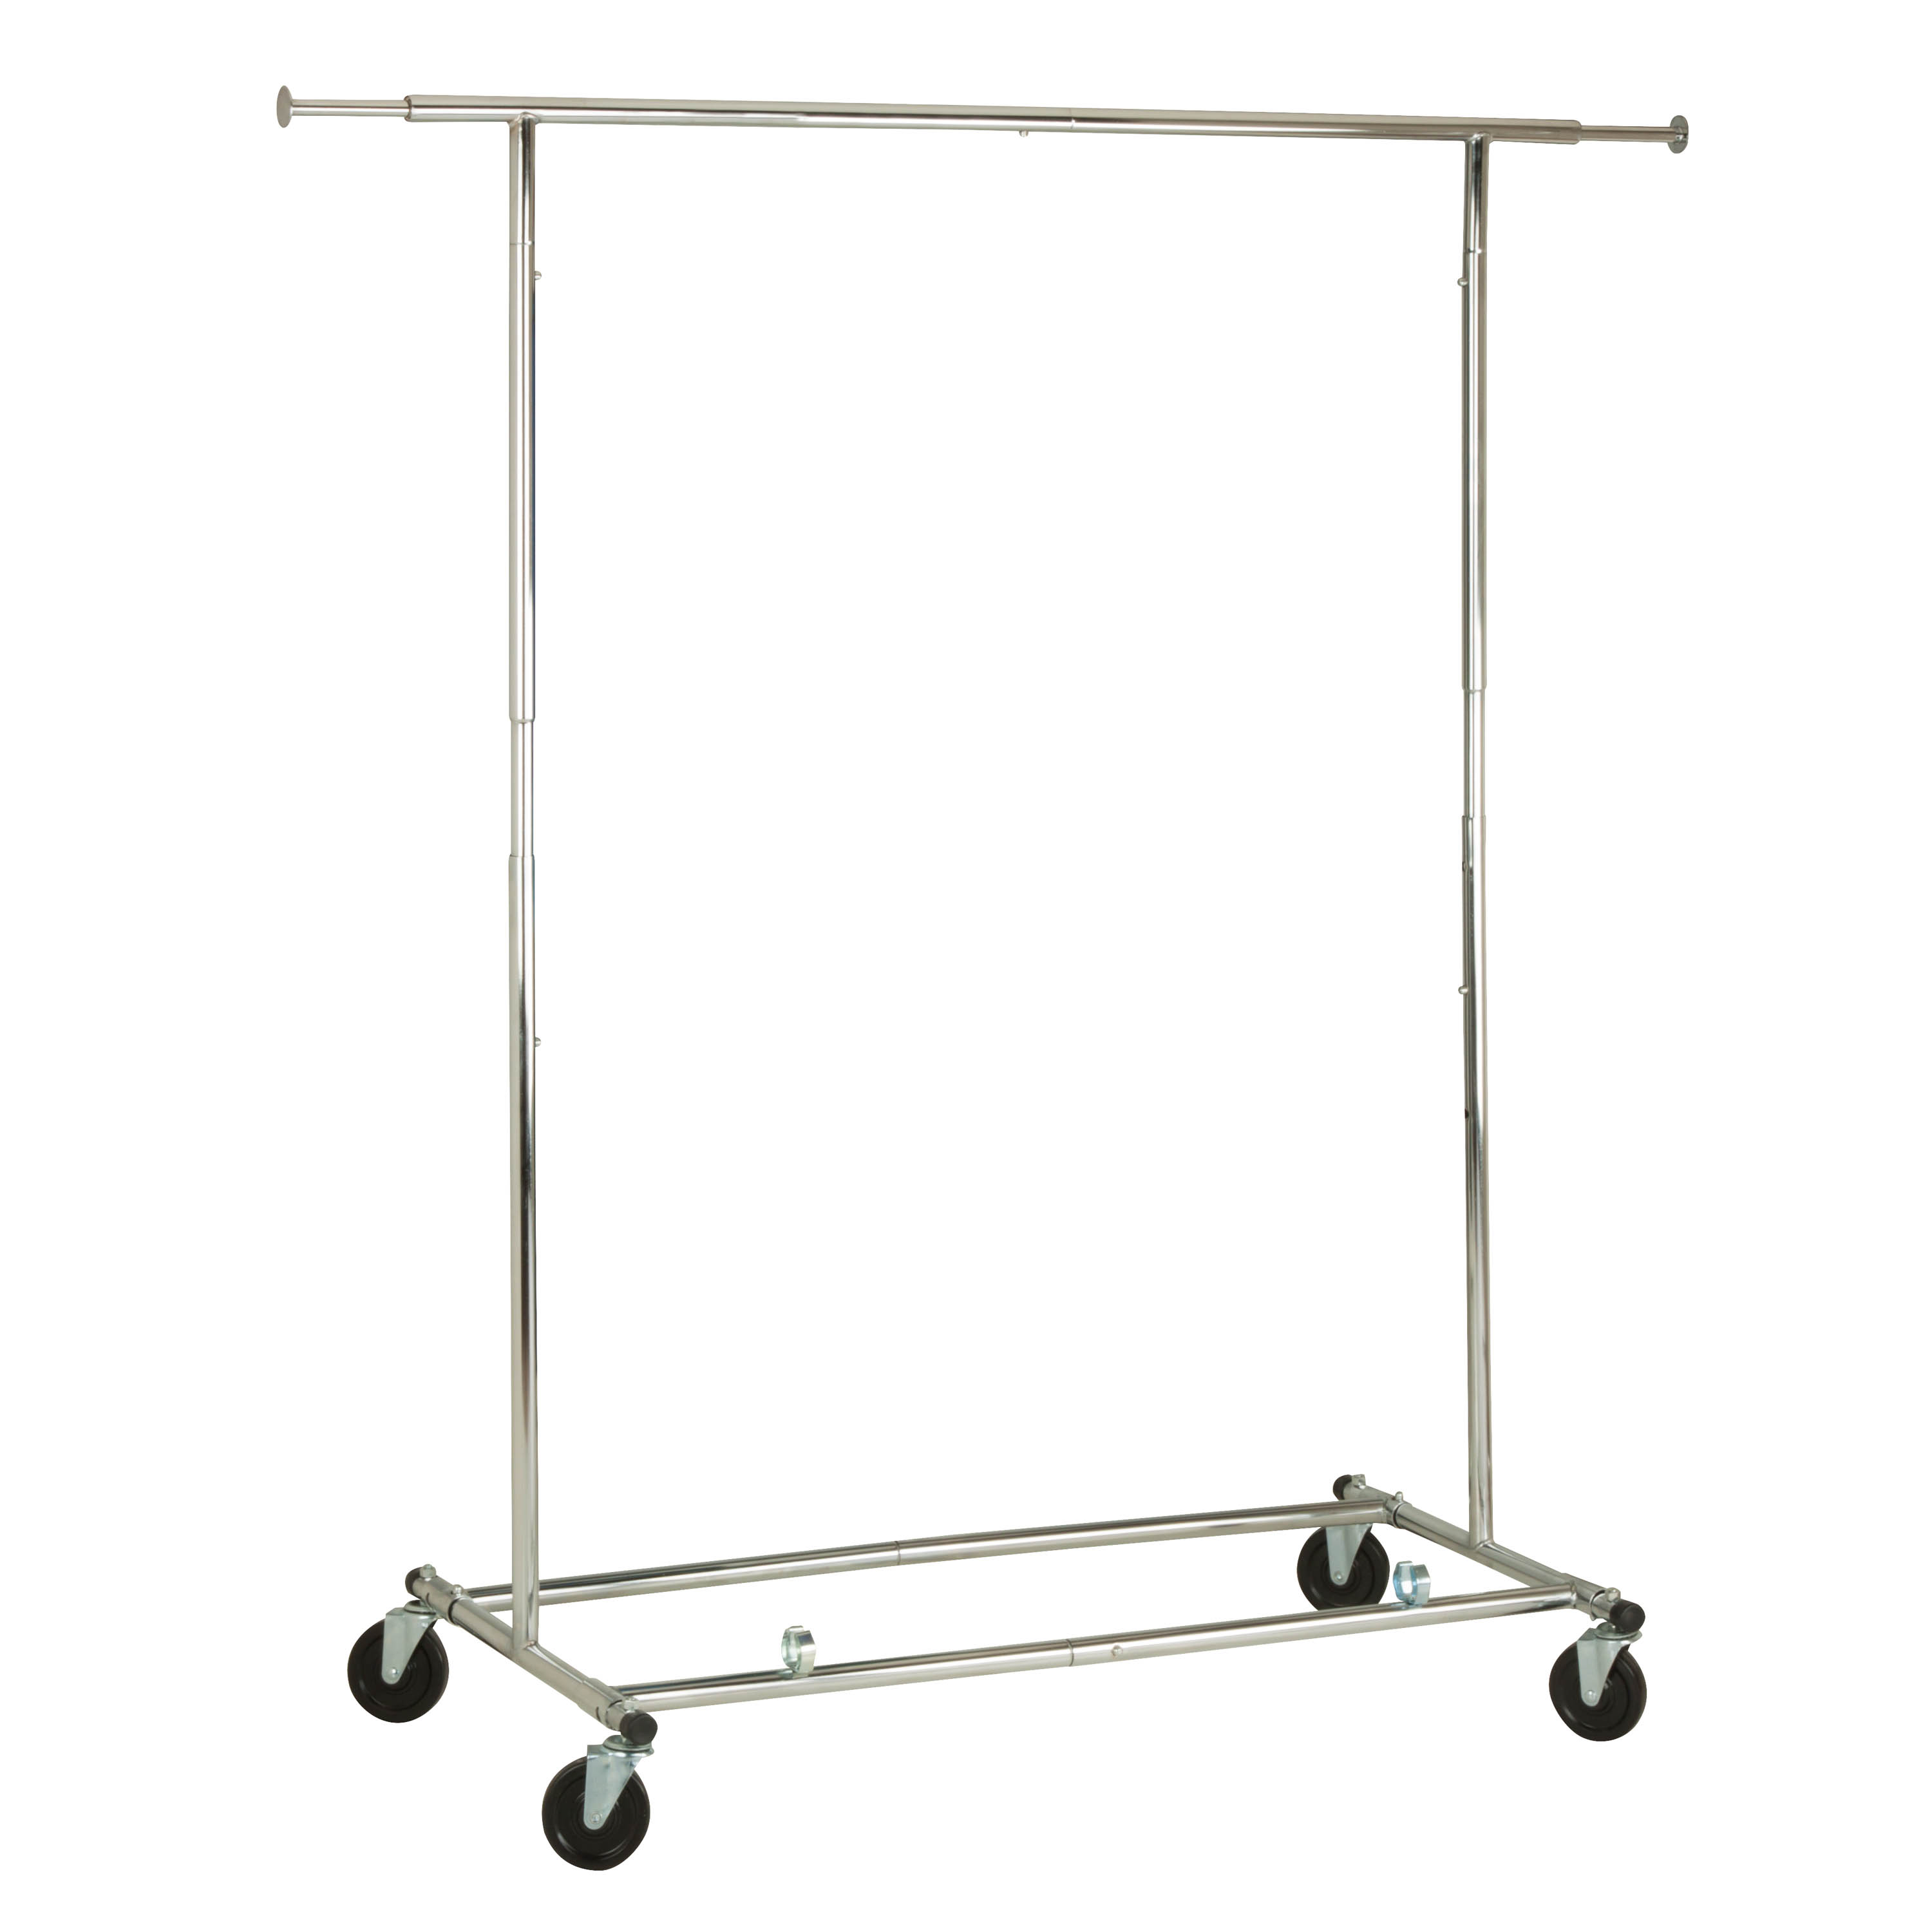 Honey Can Do Durable Collapsible Garment Rack, Chrome